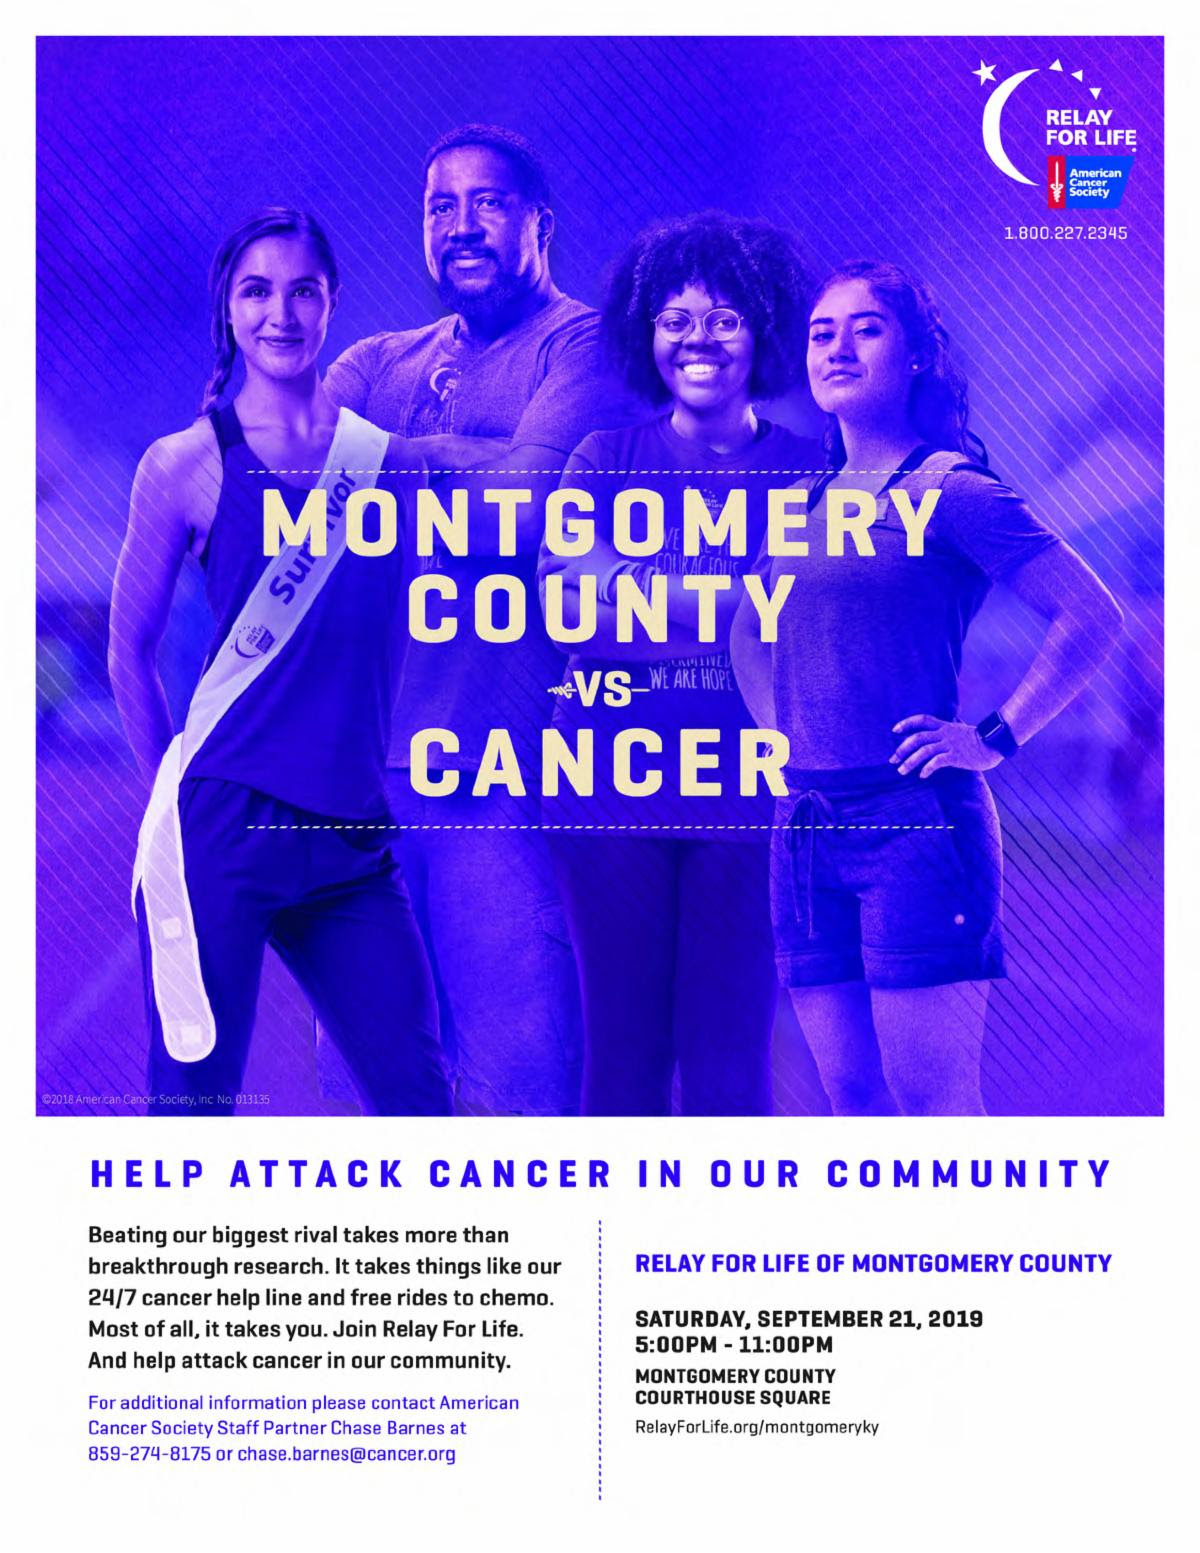 Relay for Life Montgomery County